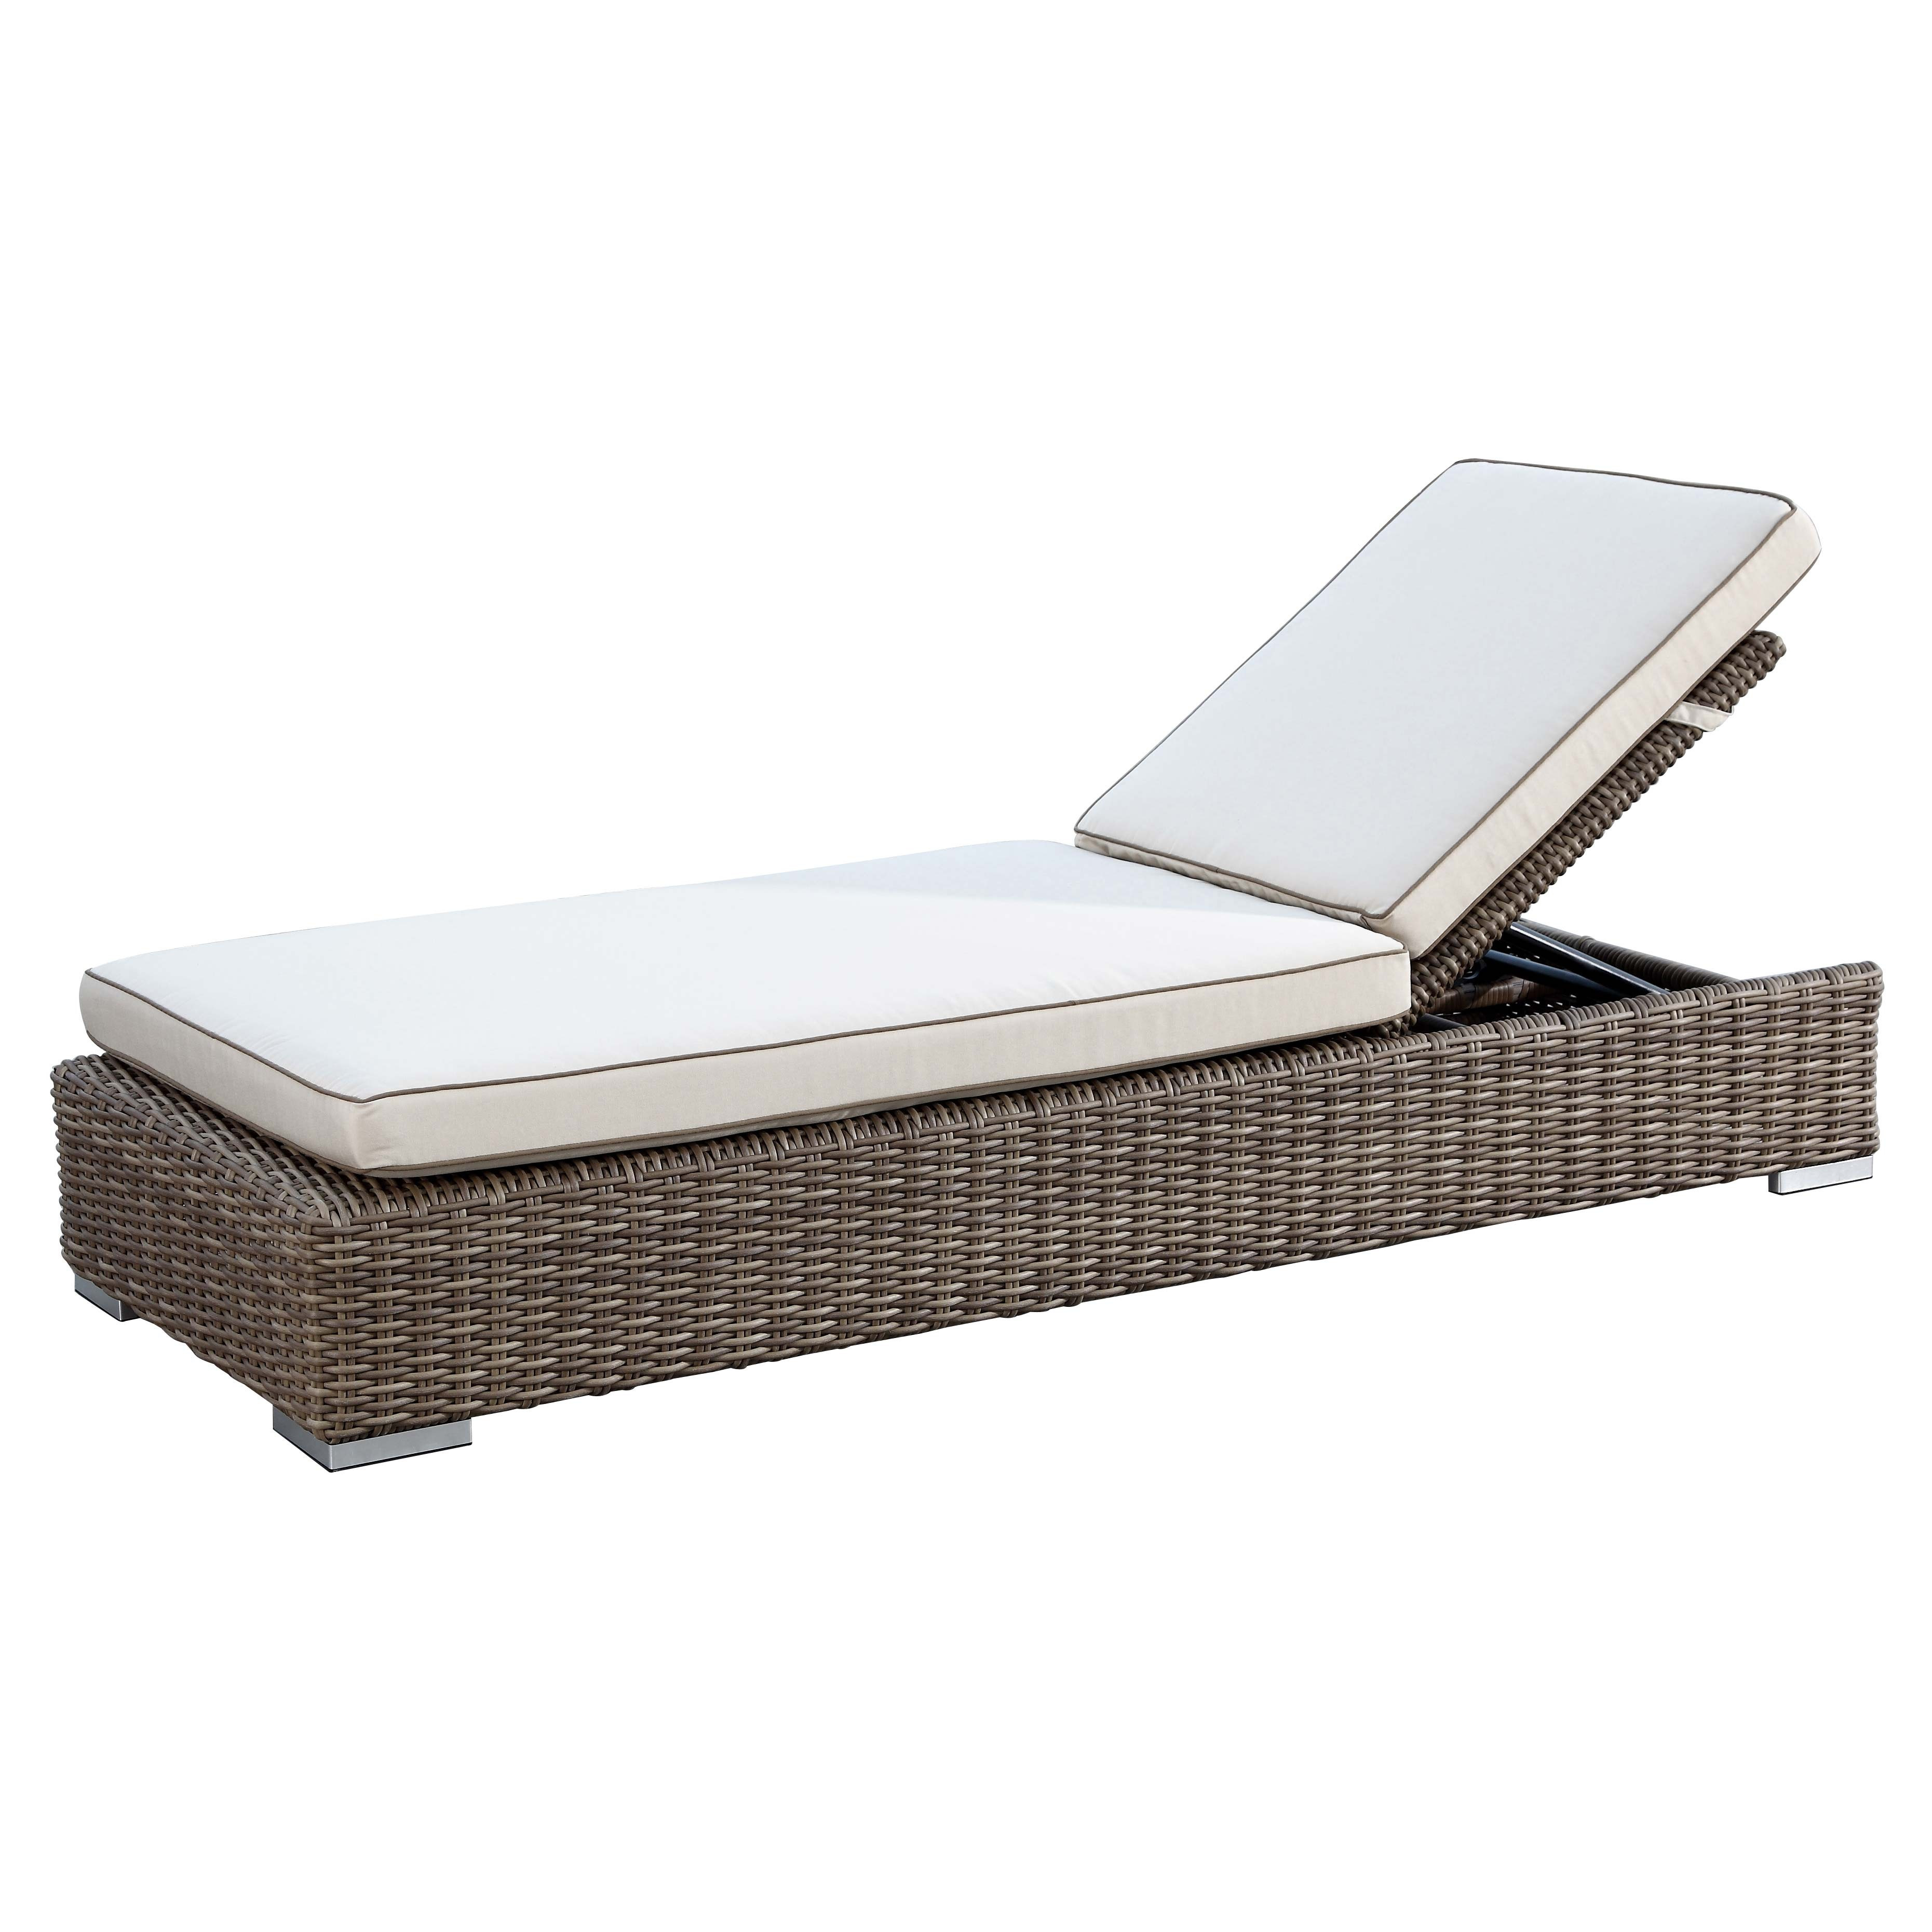 x cushions lounge fabulous patio polywood in tulum co chaise cushion sunbrella outdoor smsender mattress backyard pictures remodel